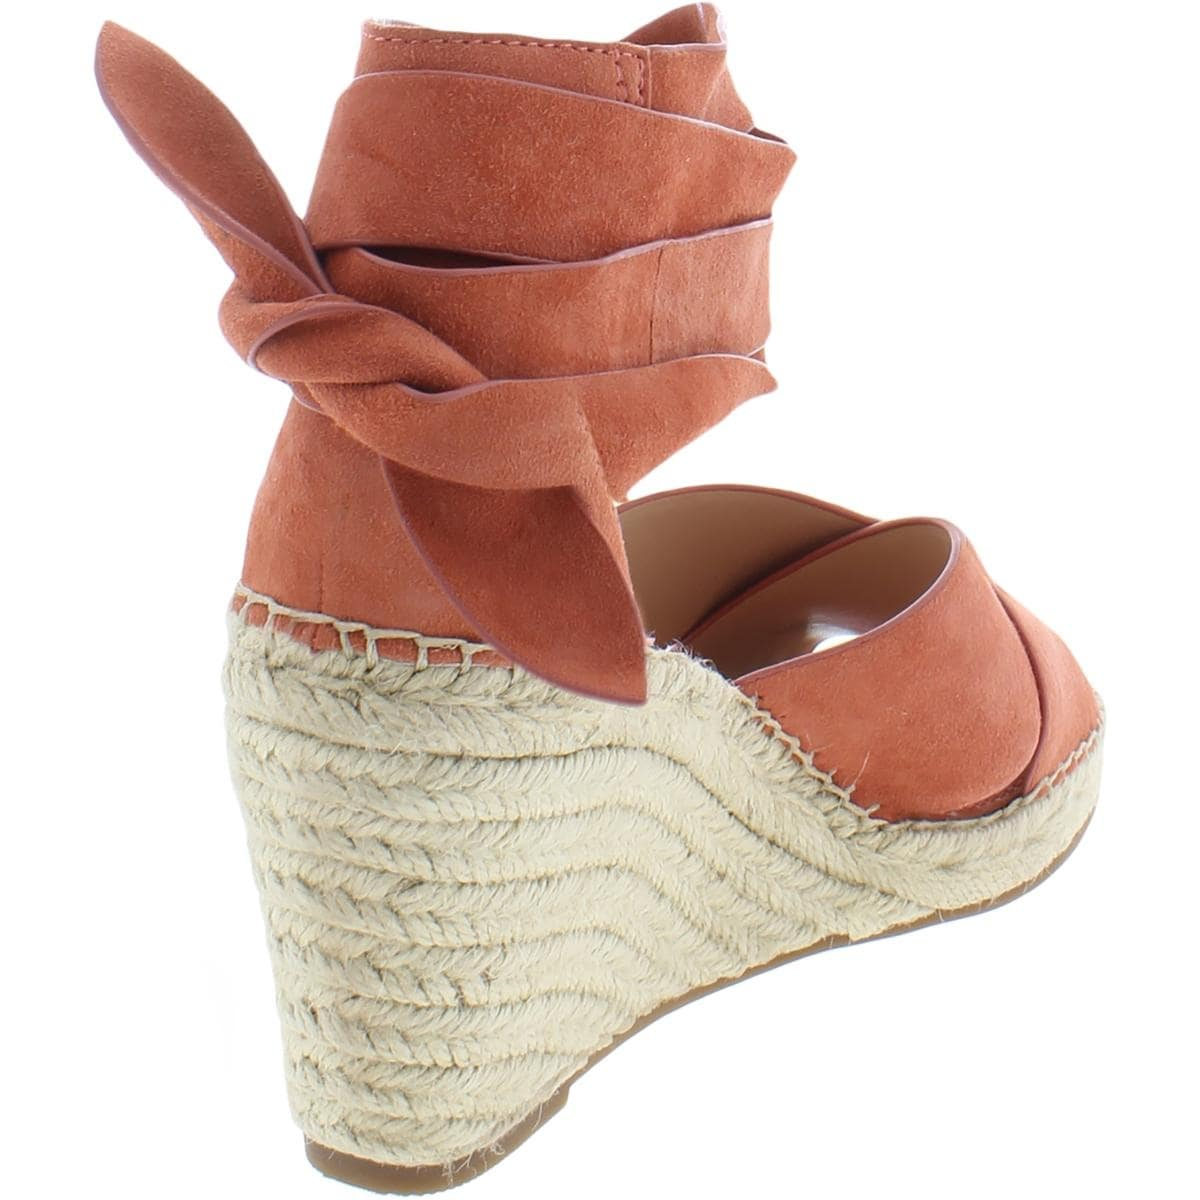 b23e70c7edc Vince Camuto Womens Leddy Wedge Sandals Leather Espadrille